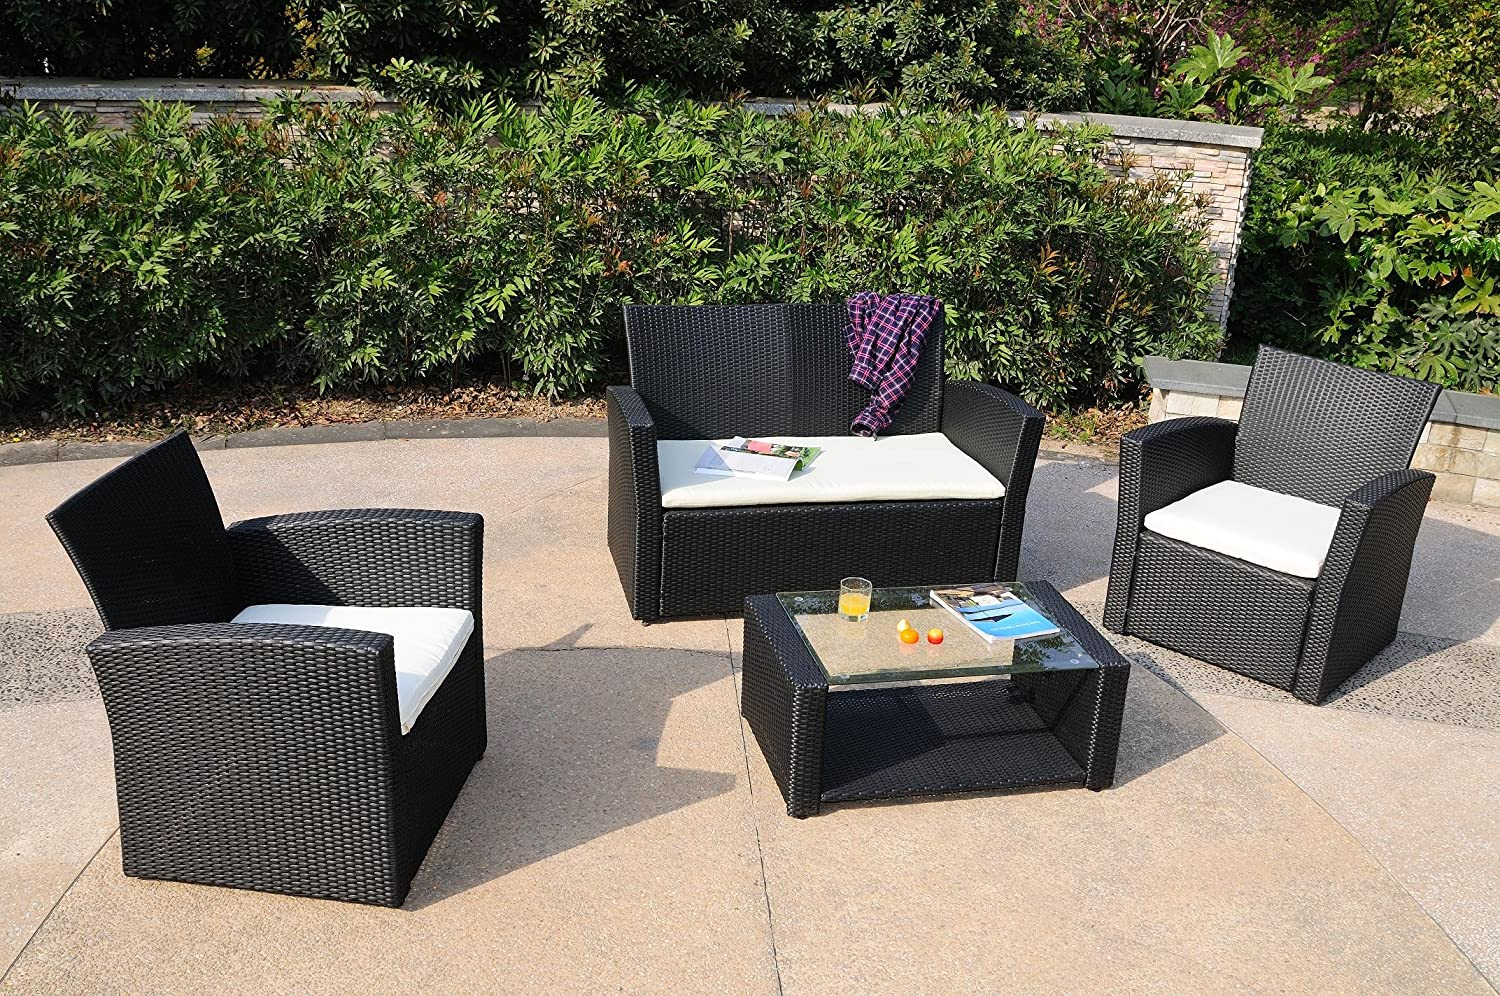 Patio Furniture Sets Clearance Patio Design Ideas : A14VZaMjJlLSL1500 from patioideass.blogspot.com size 1500 x 996 jpeg 653kB